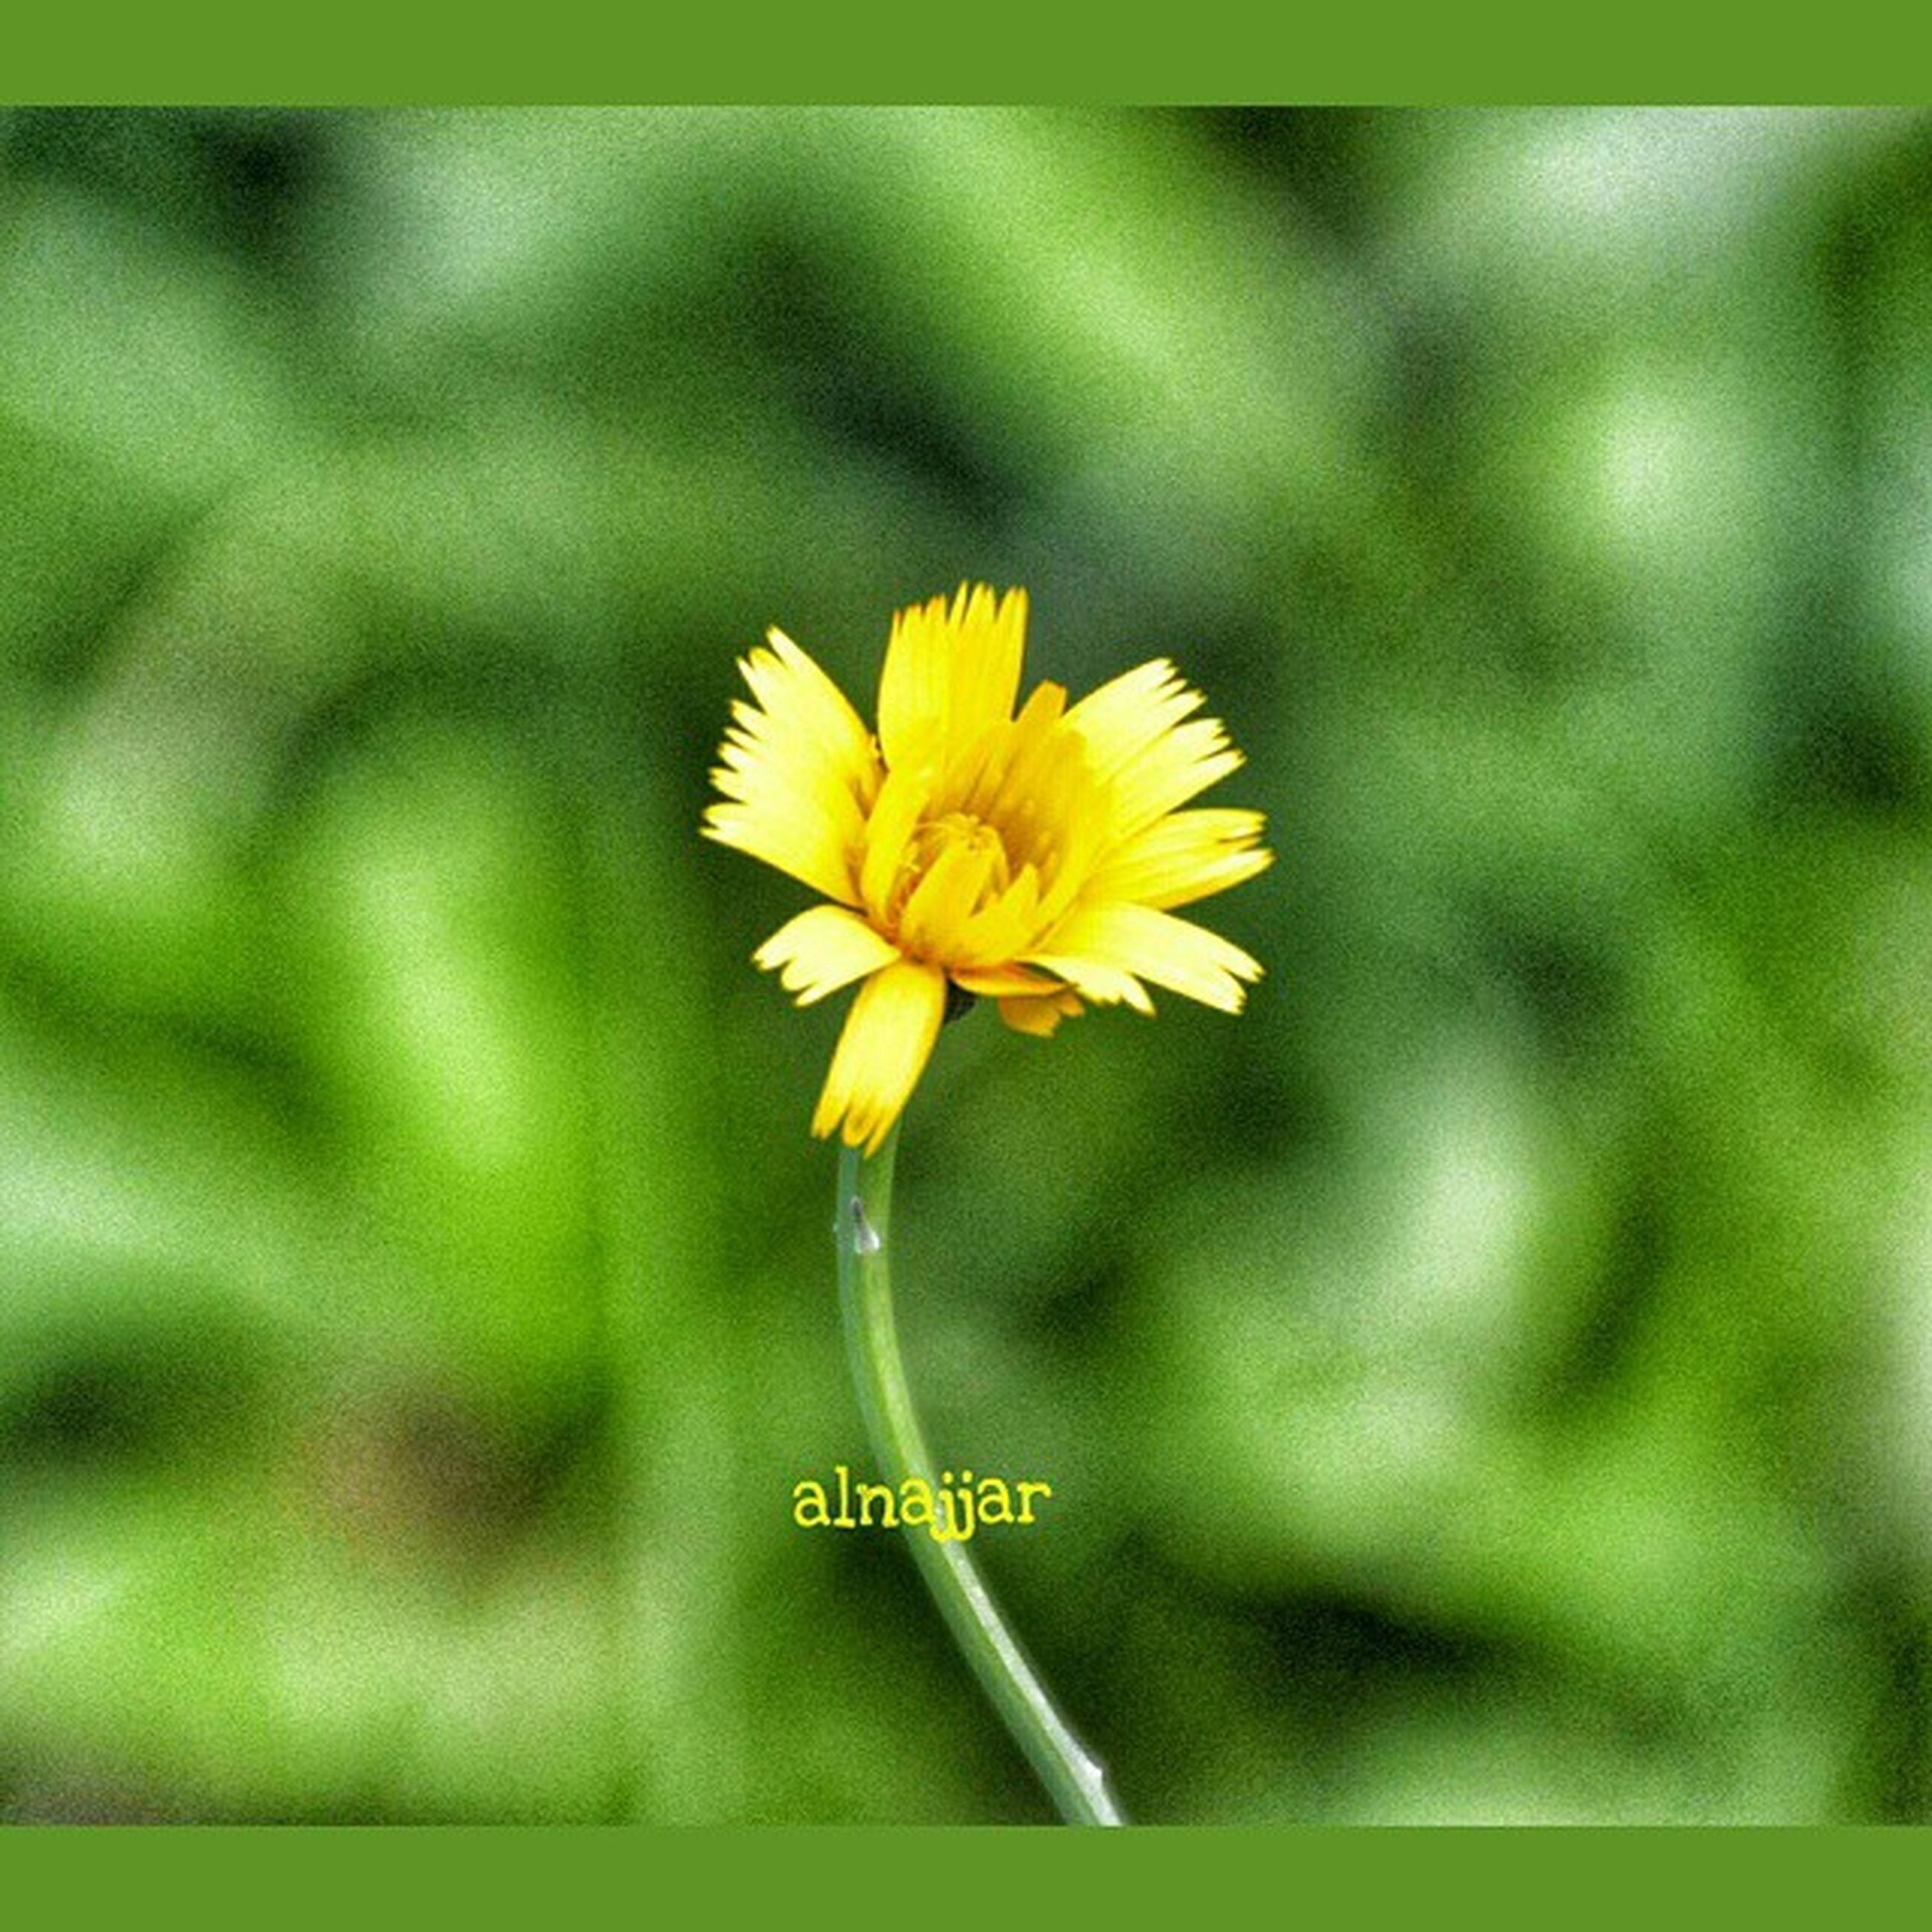 flower, yellow, petal, freshness, fragility, flower head, focus on foreground, growth, beauty in nature, close-up, nature, blooming, single flower, stem, selective focus, plant, pollen, in bloom, day, botany